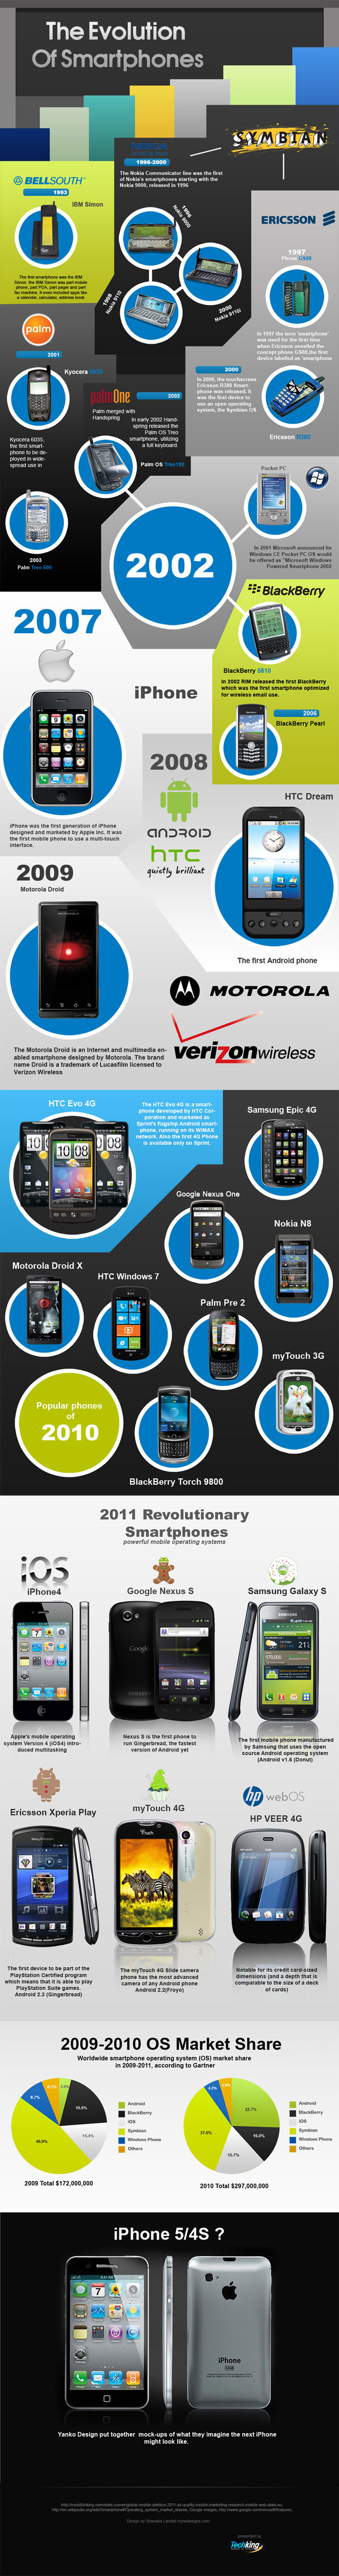 The Evolution of Smartphones – Infographic